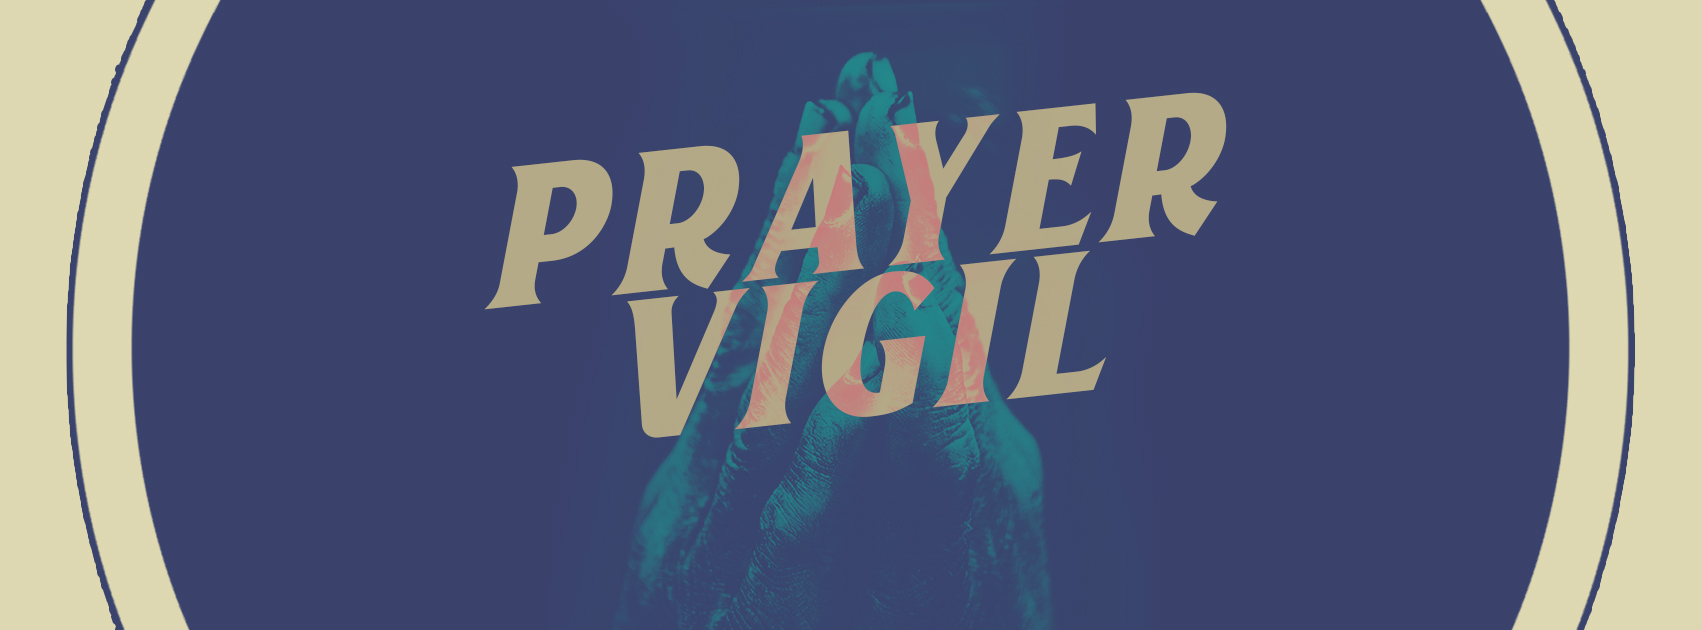 Prayer Vigil FB Cover Photo.jpg